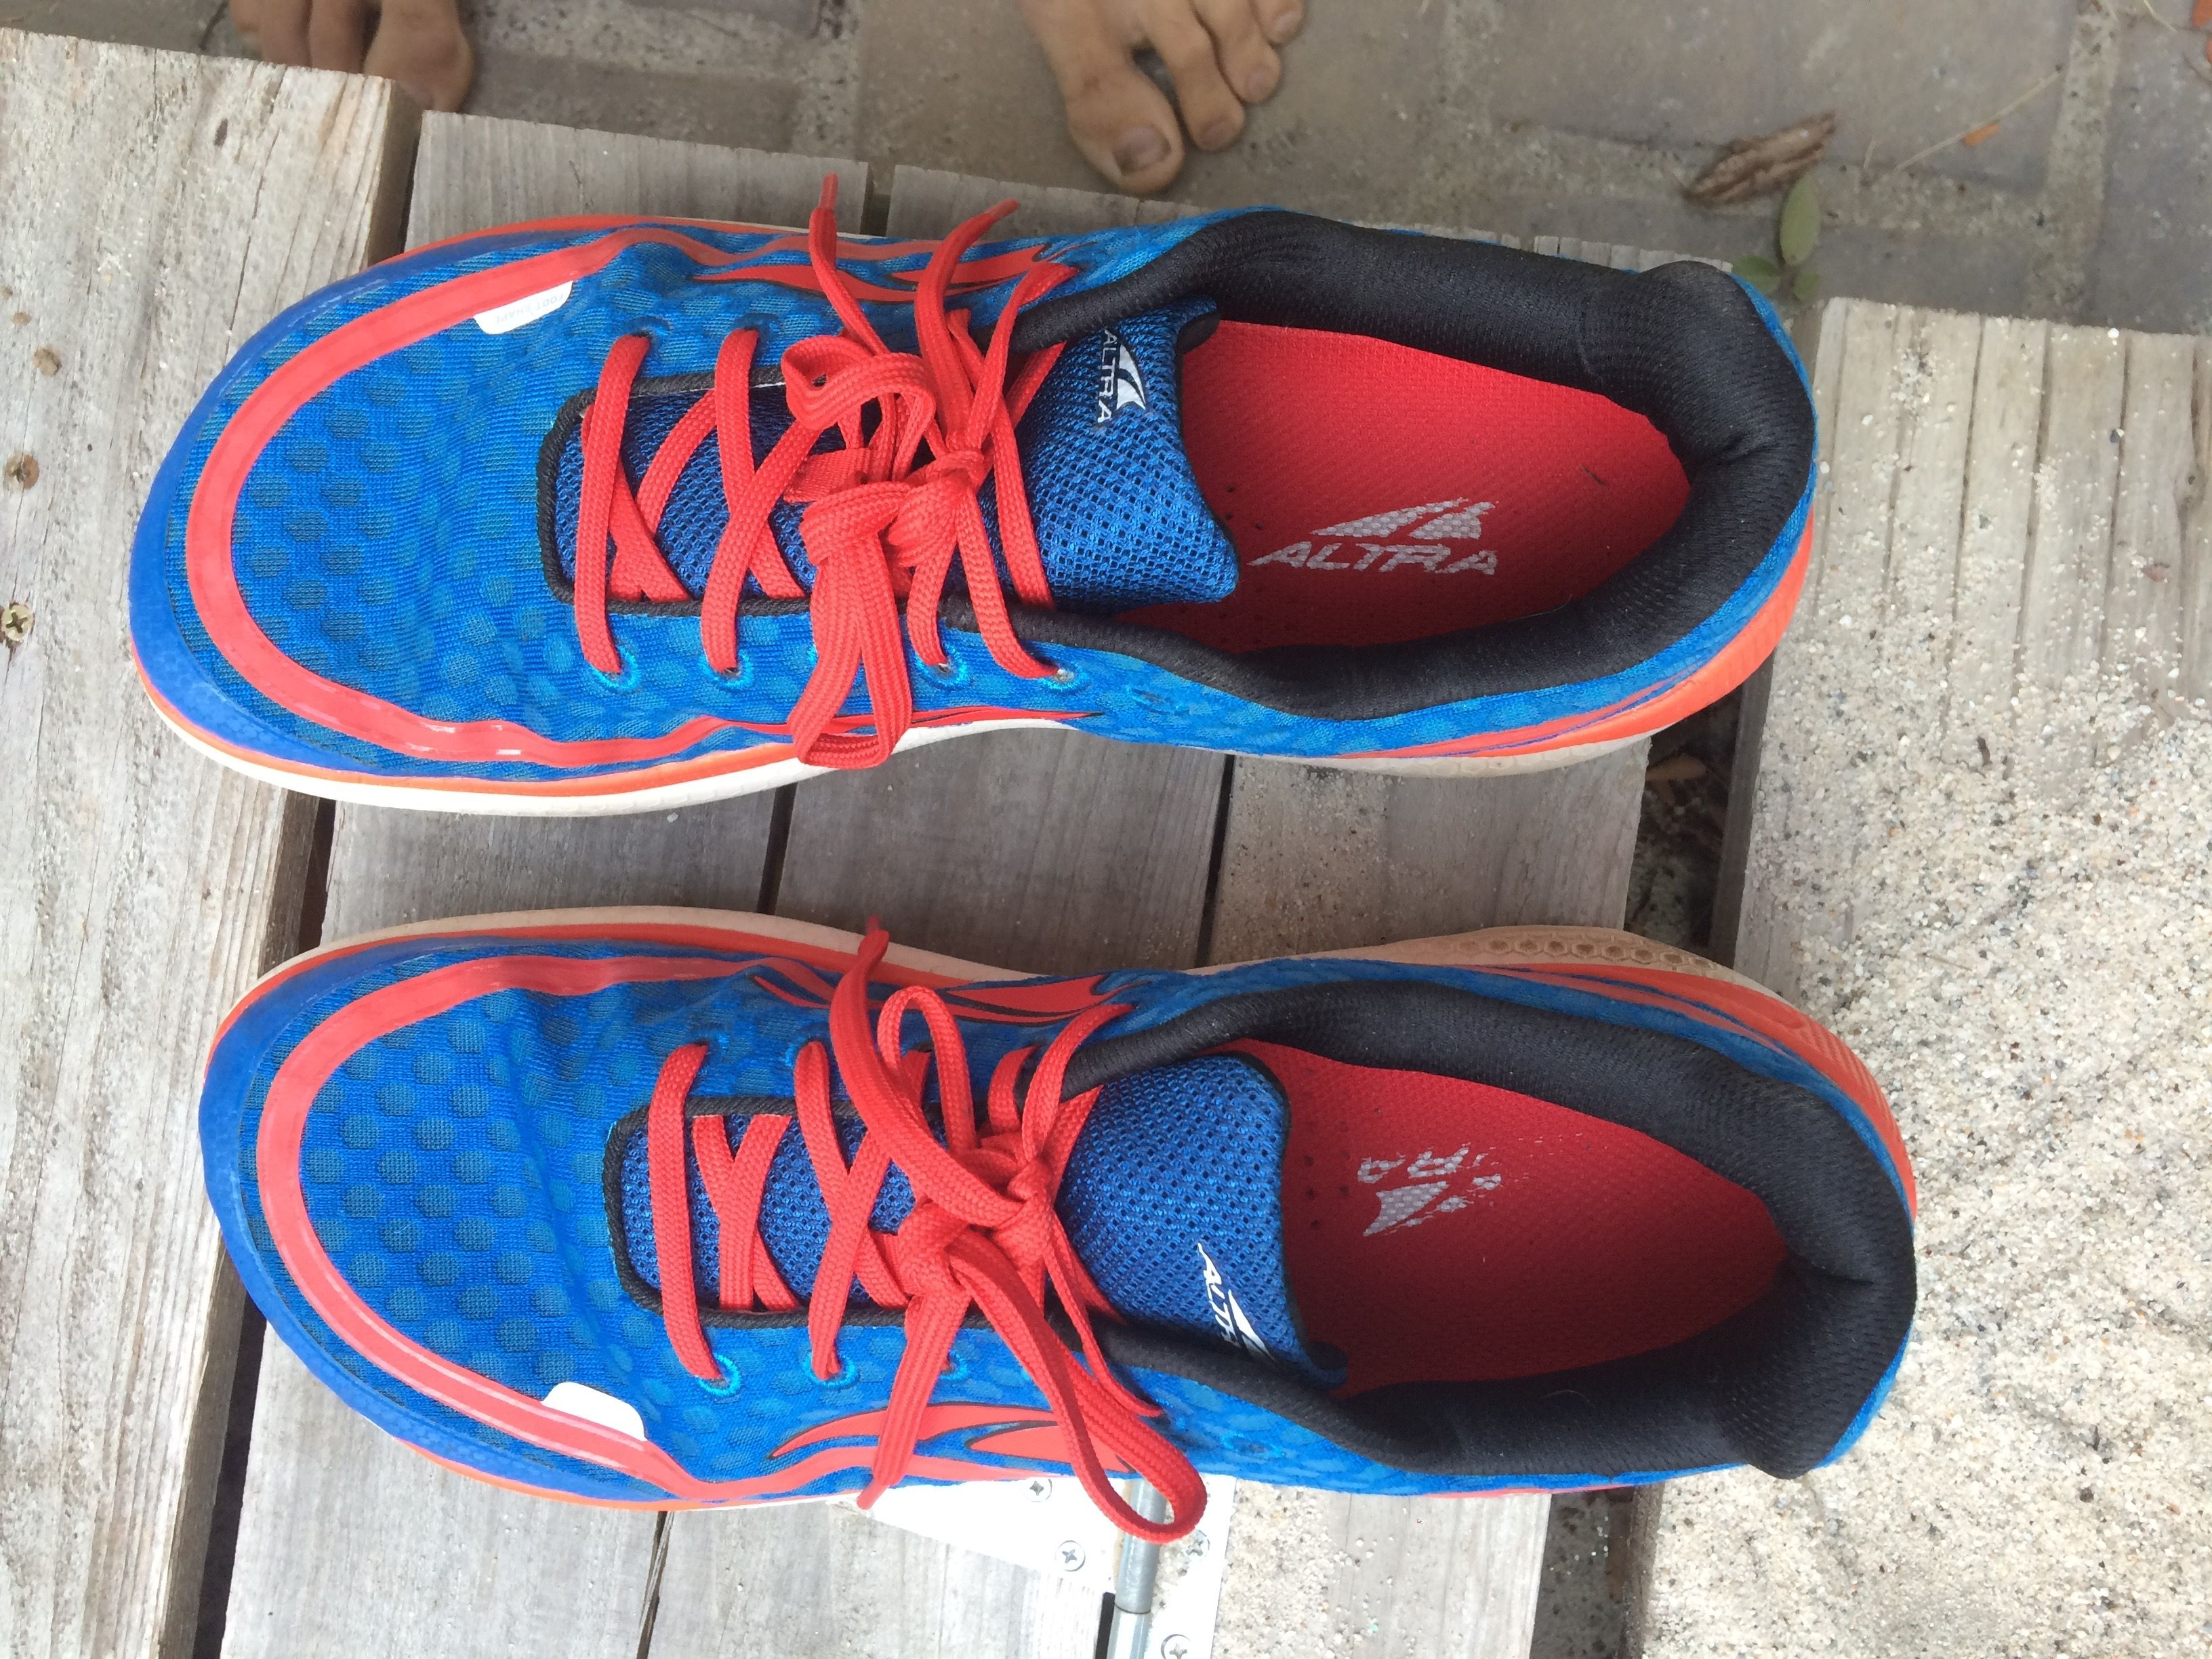 Altra Paradigm 1 5 Shoe Review Running Shoes Running